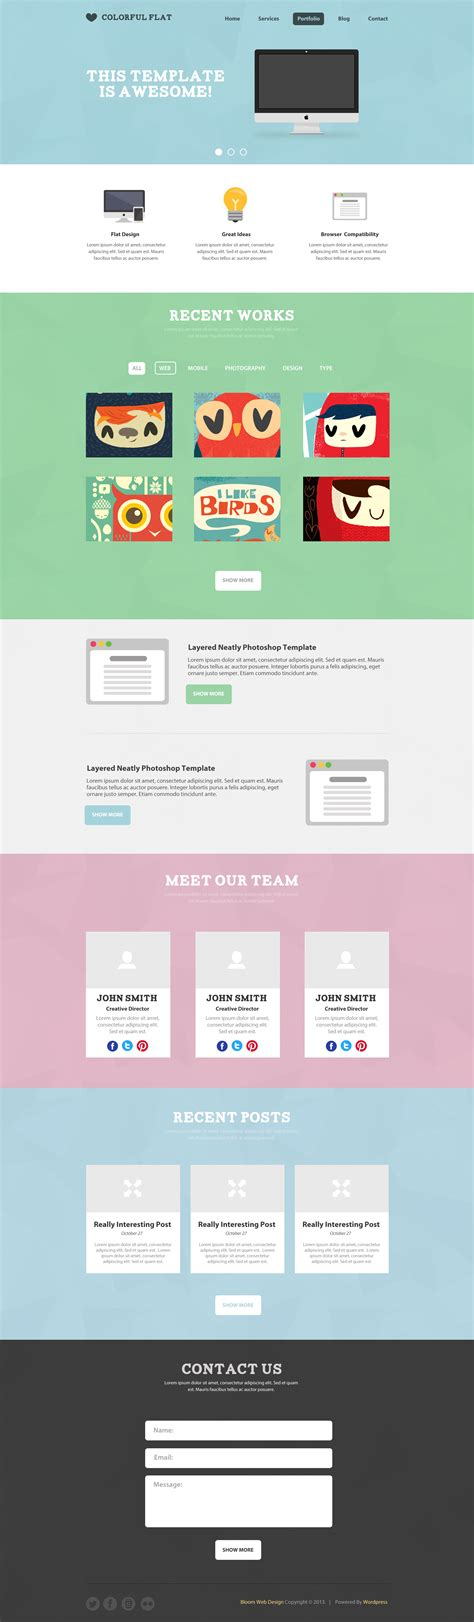 Blog One Page Mania Single Page Website Template Free